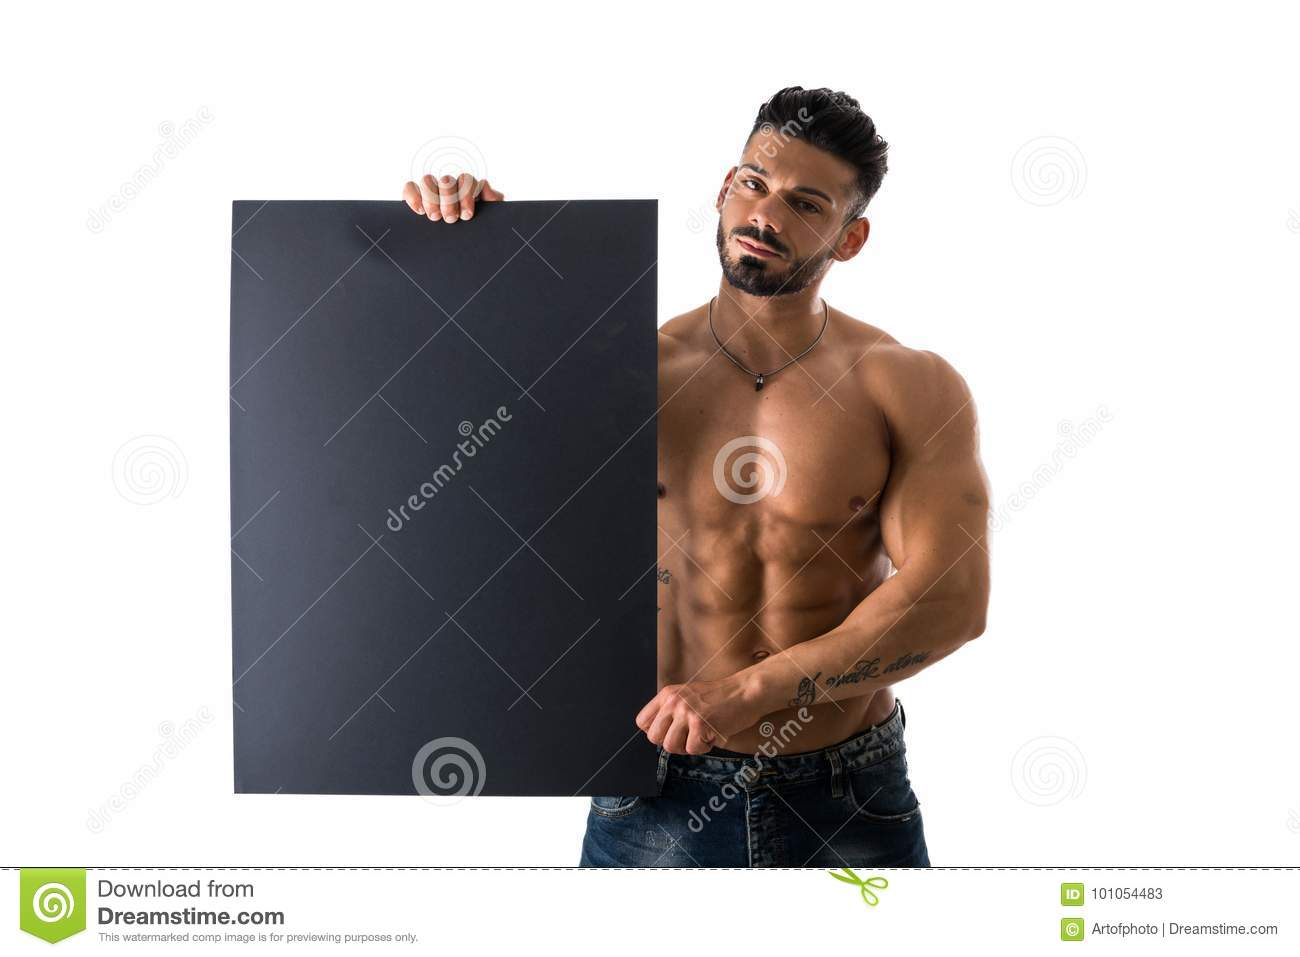 Top 60 Fully Naked Men Stock Photos, Pictures, and Images